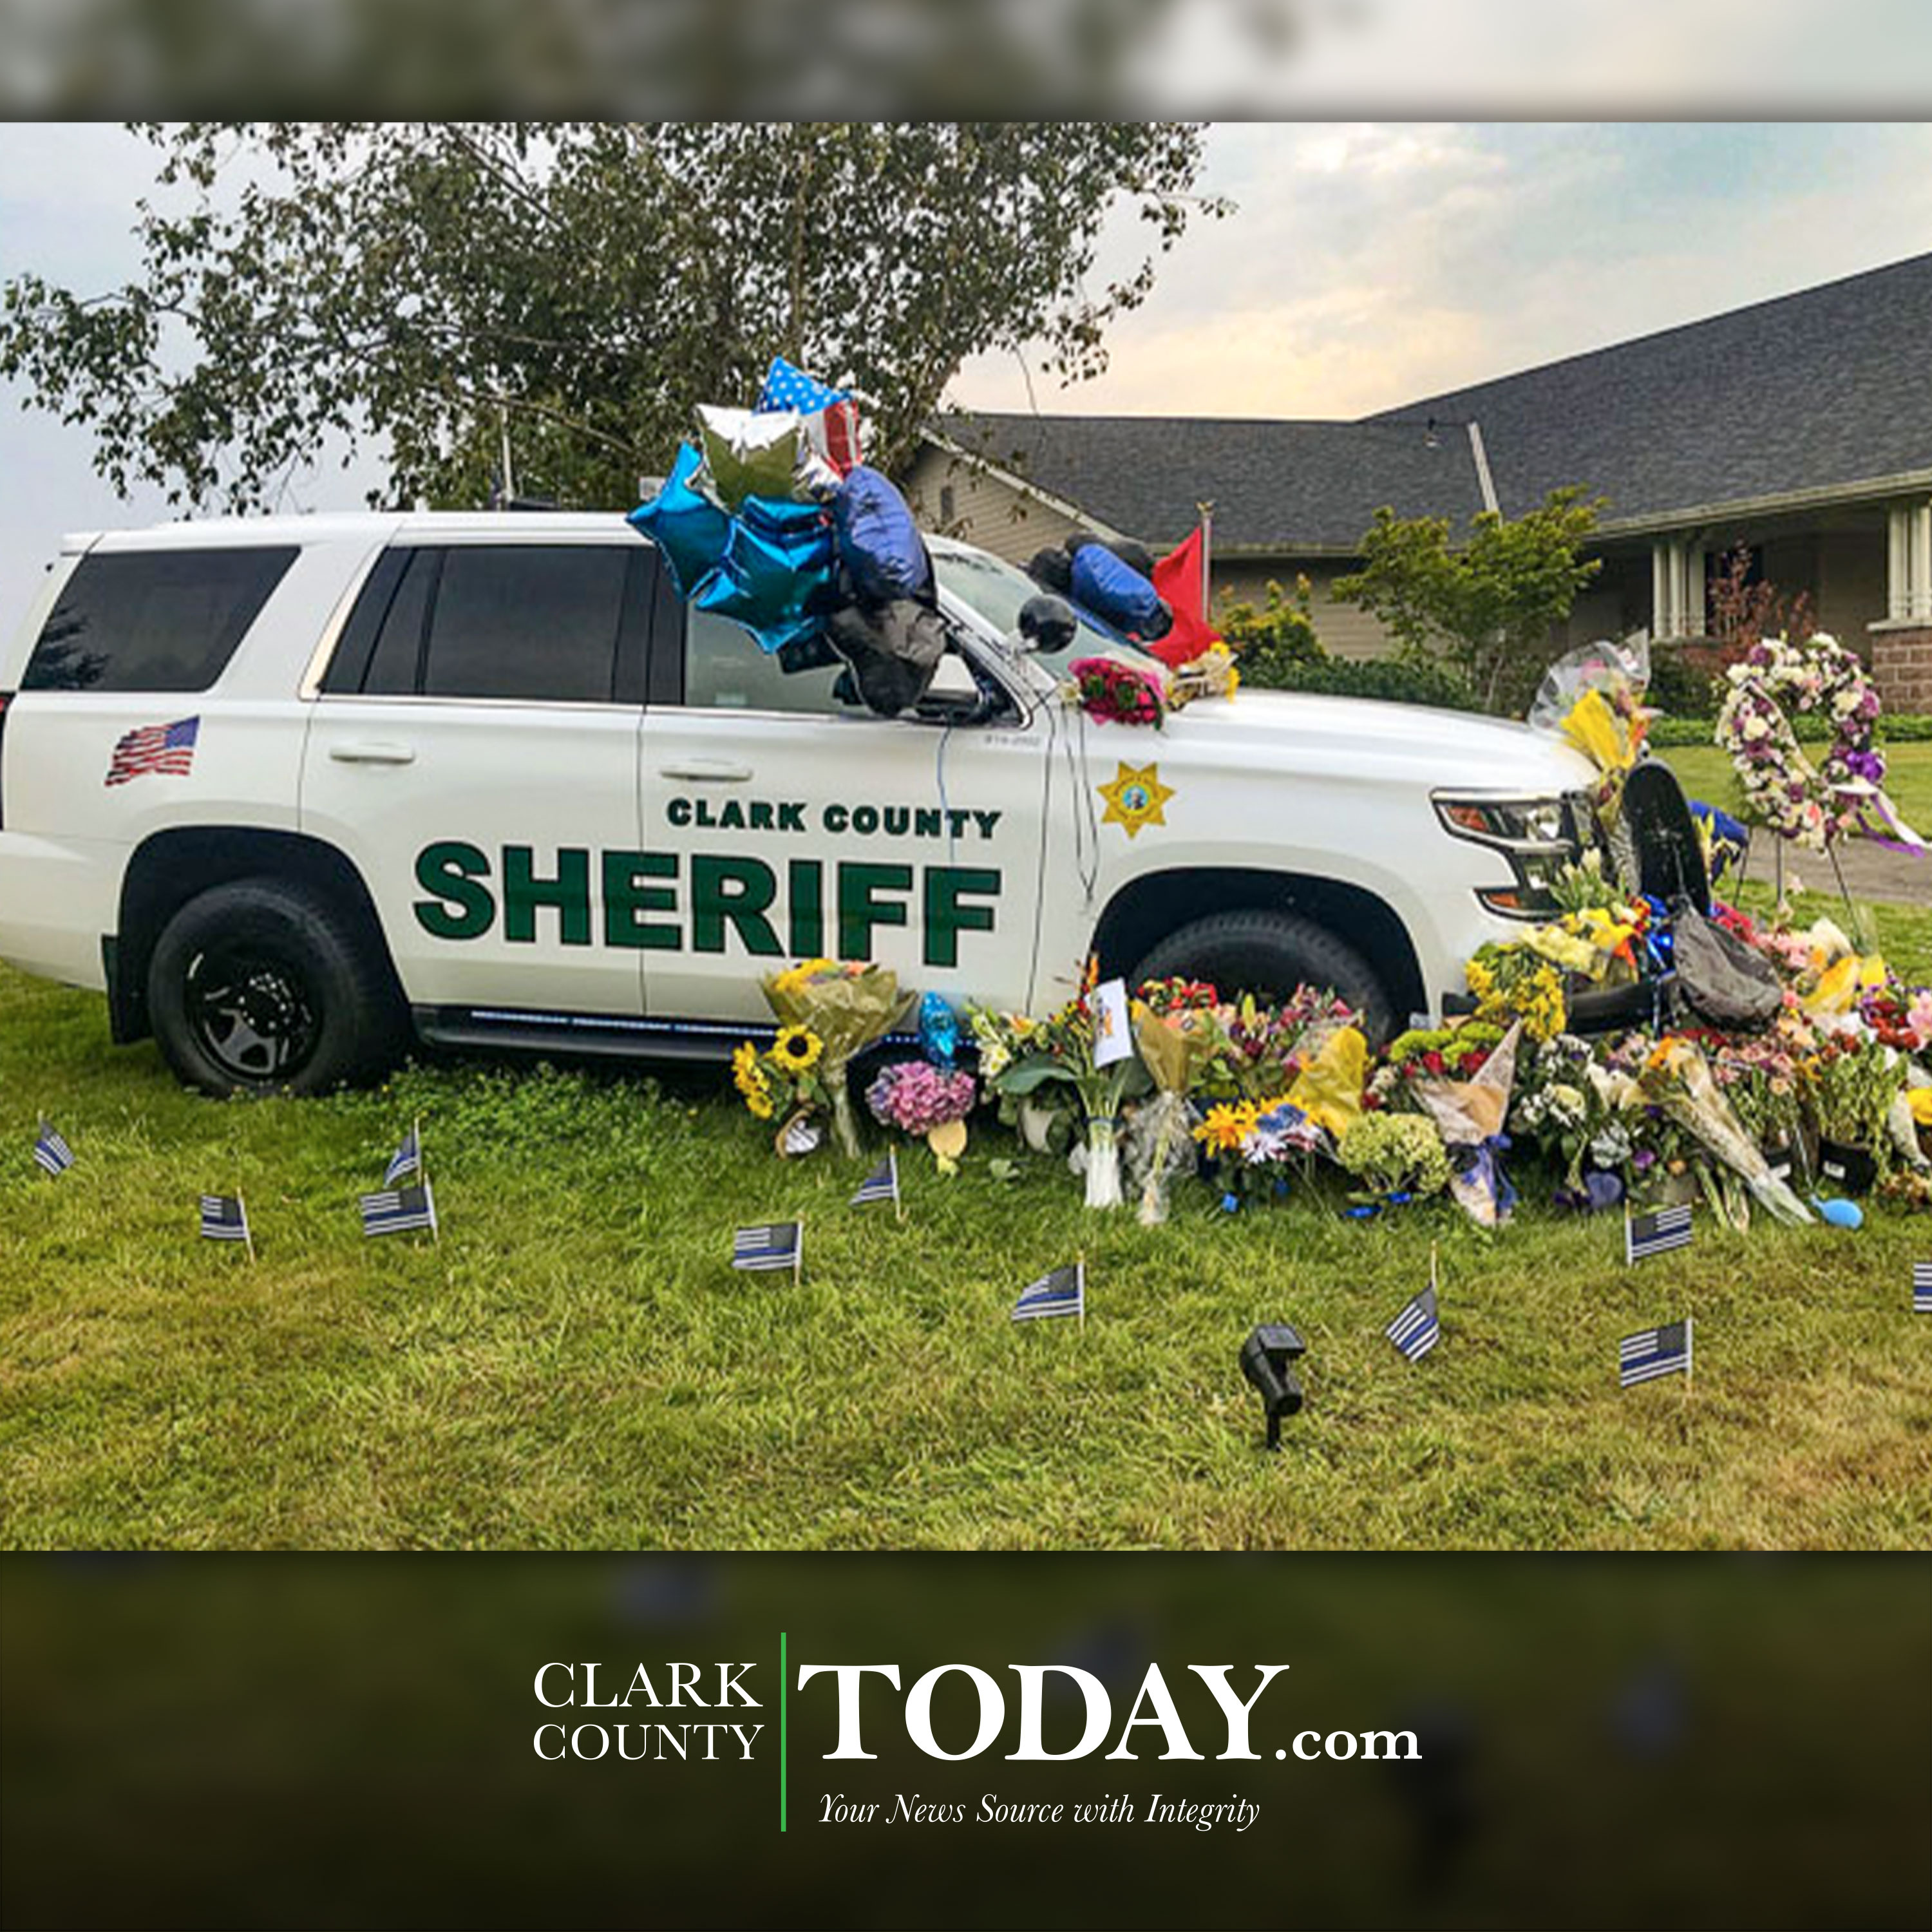 Details of Memorial Service for CCSO Sgt. Jeremy Brown provided